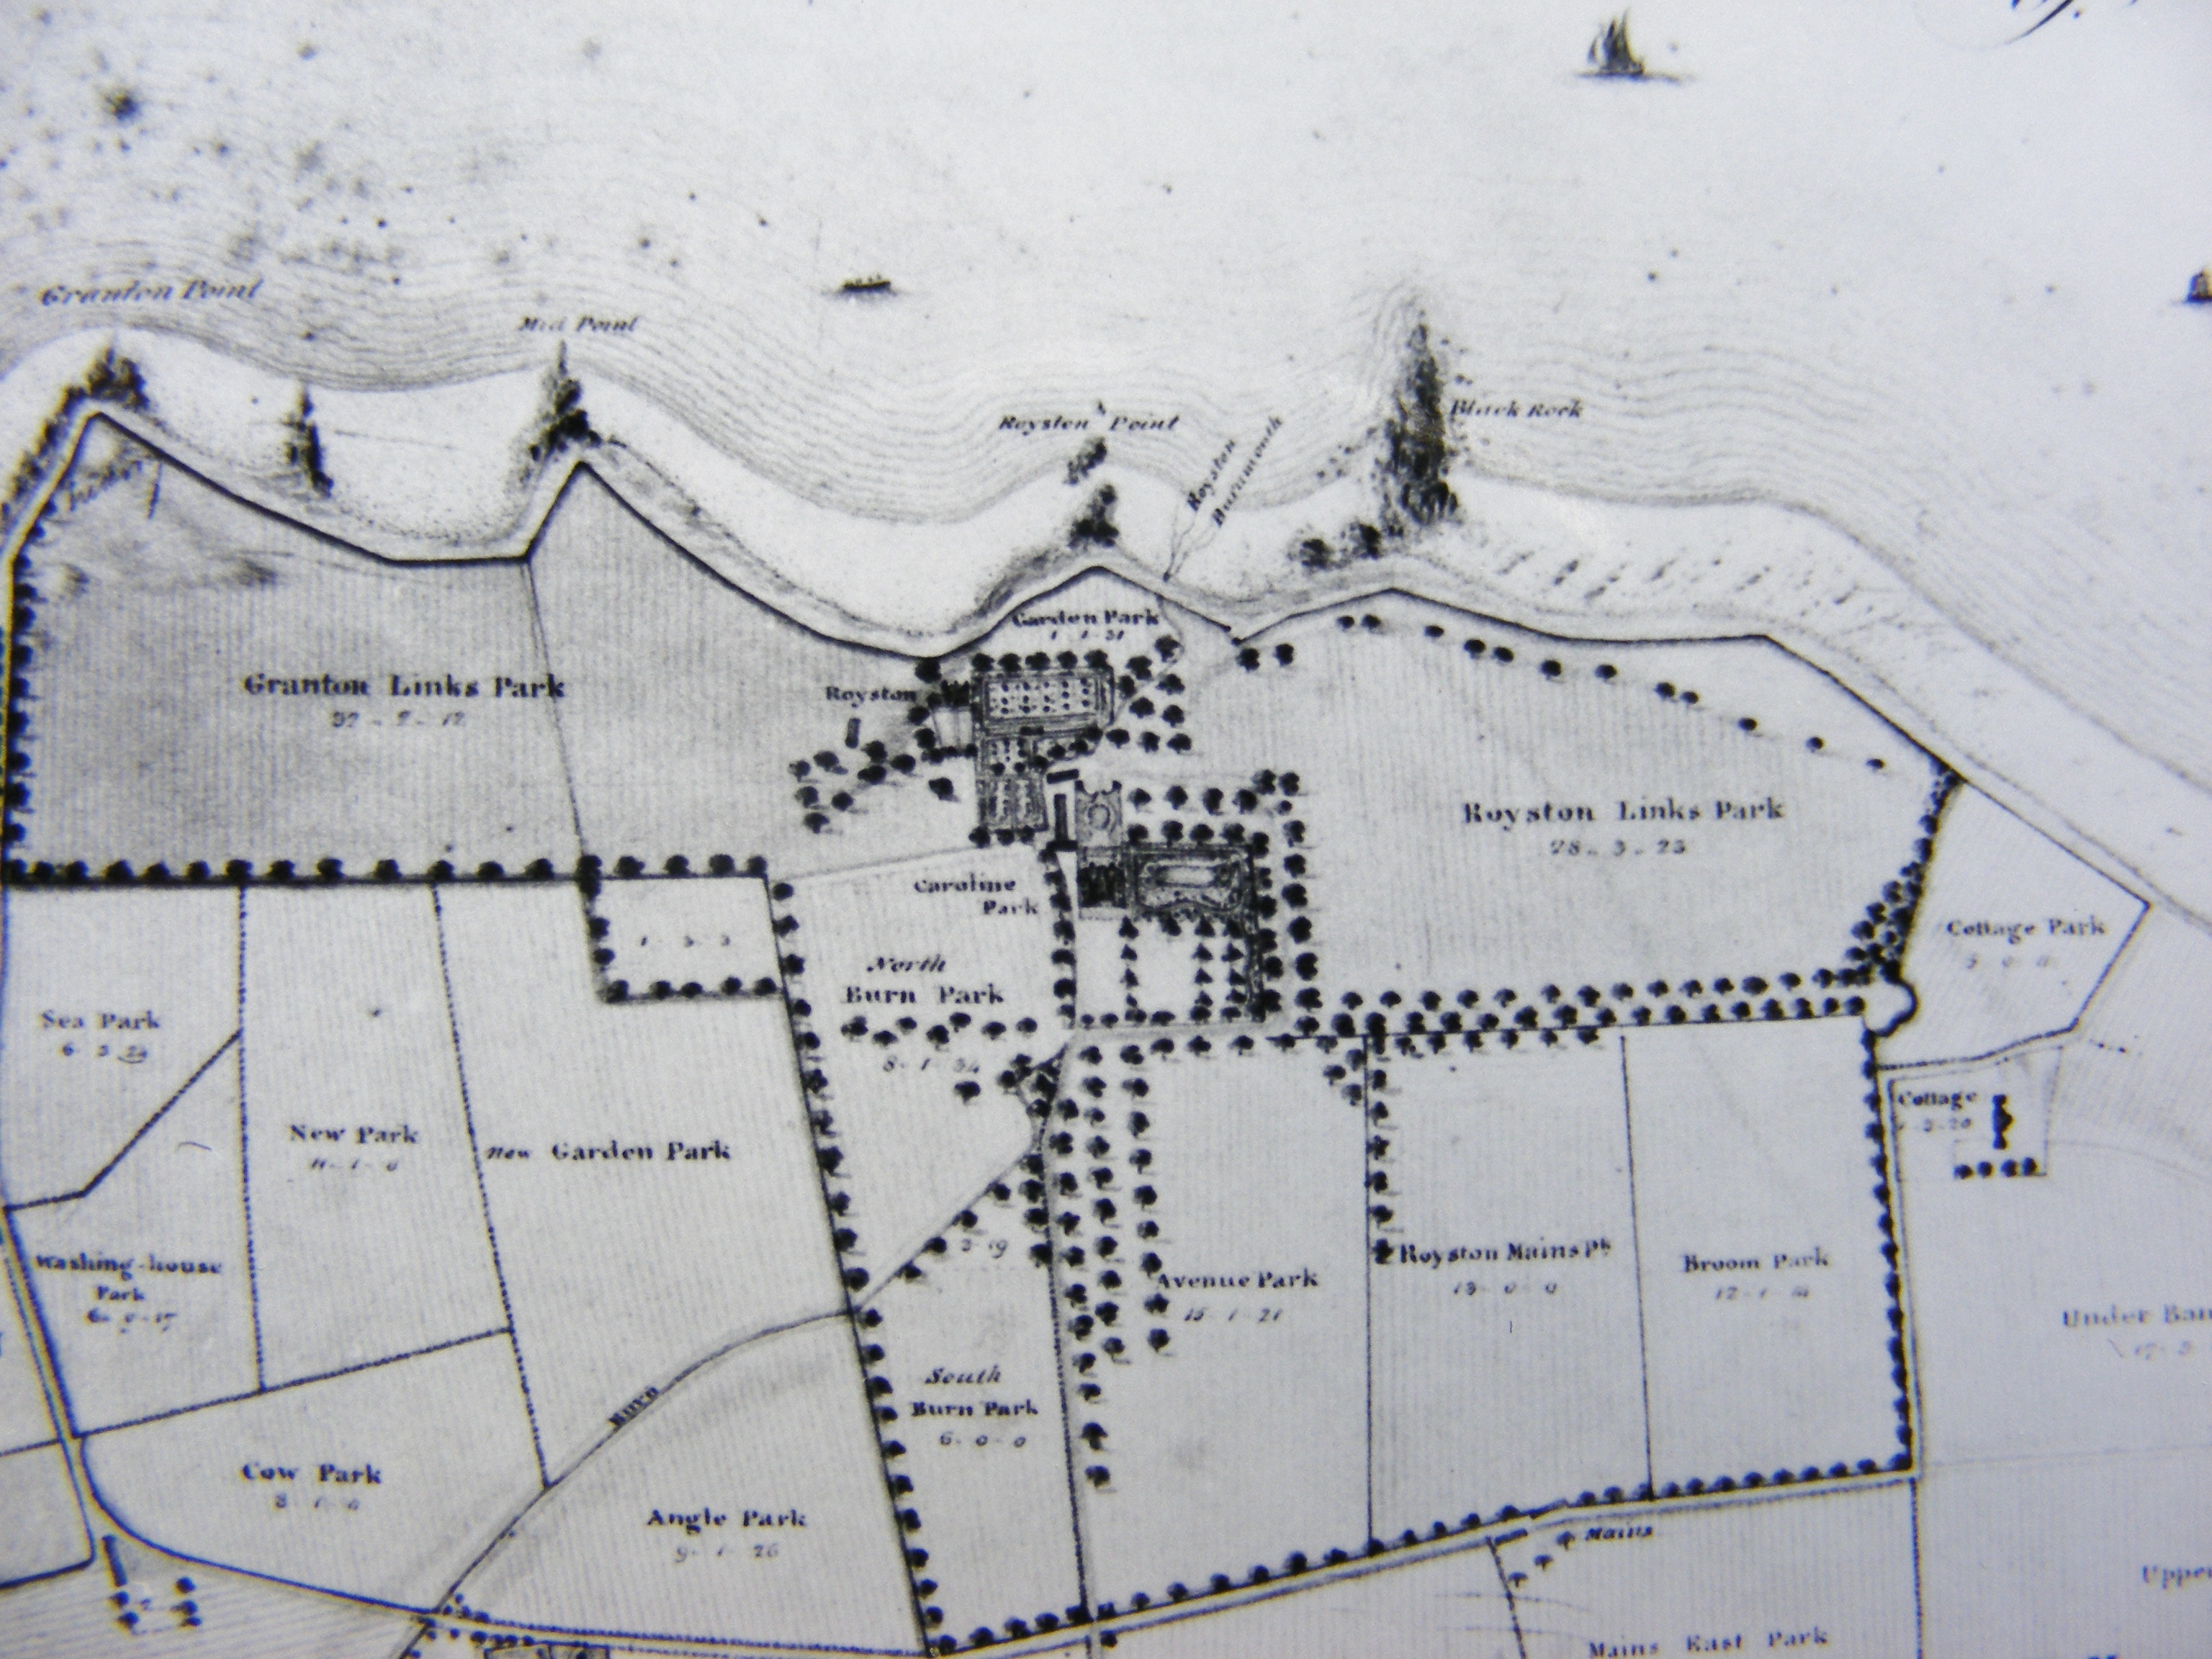 18-6-caroline-prks-estate-1811-estates-of-caroline-park-oyster-scalp-in-the-parishes-of-st-cuthberts